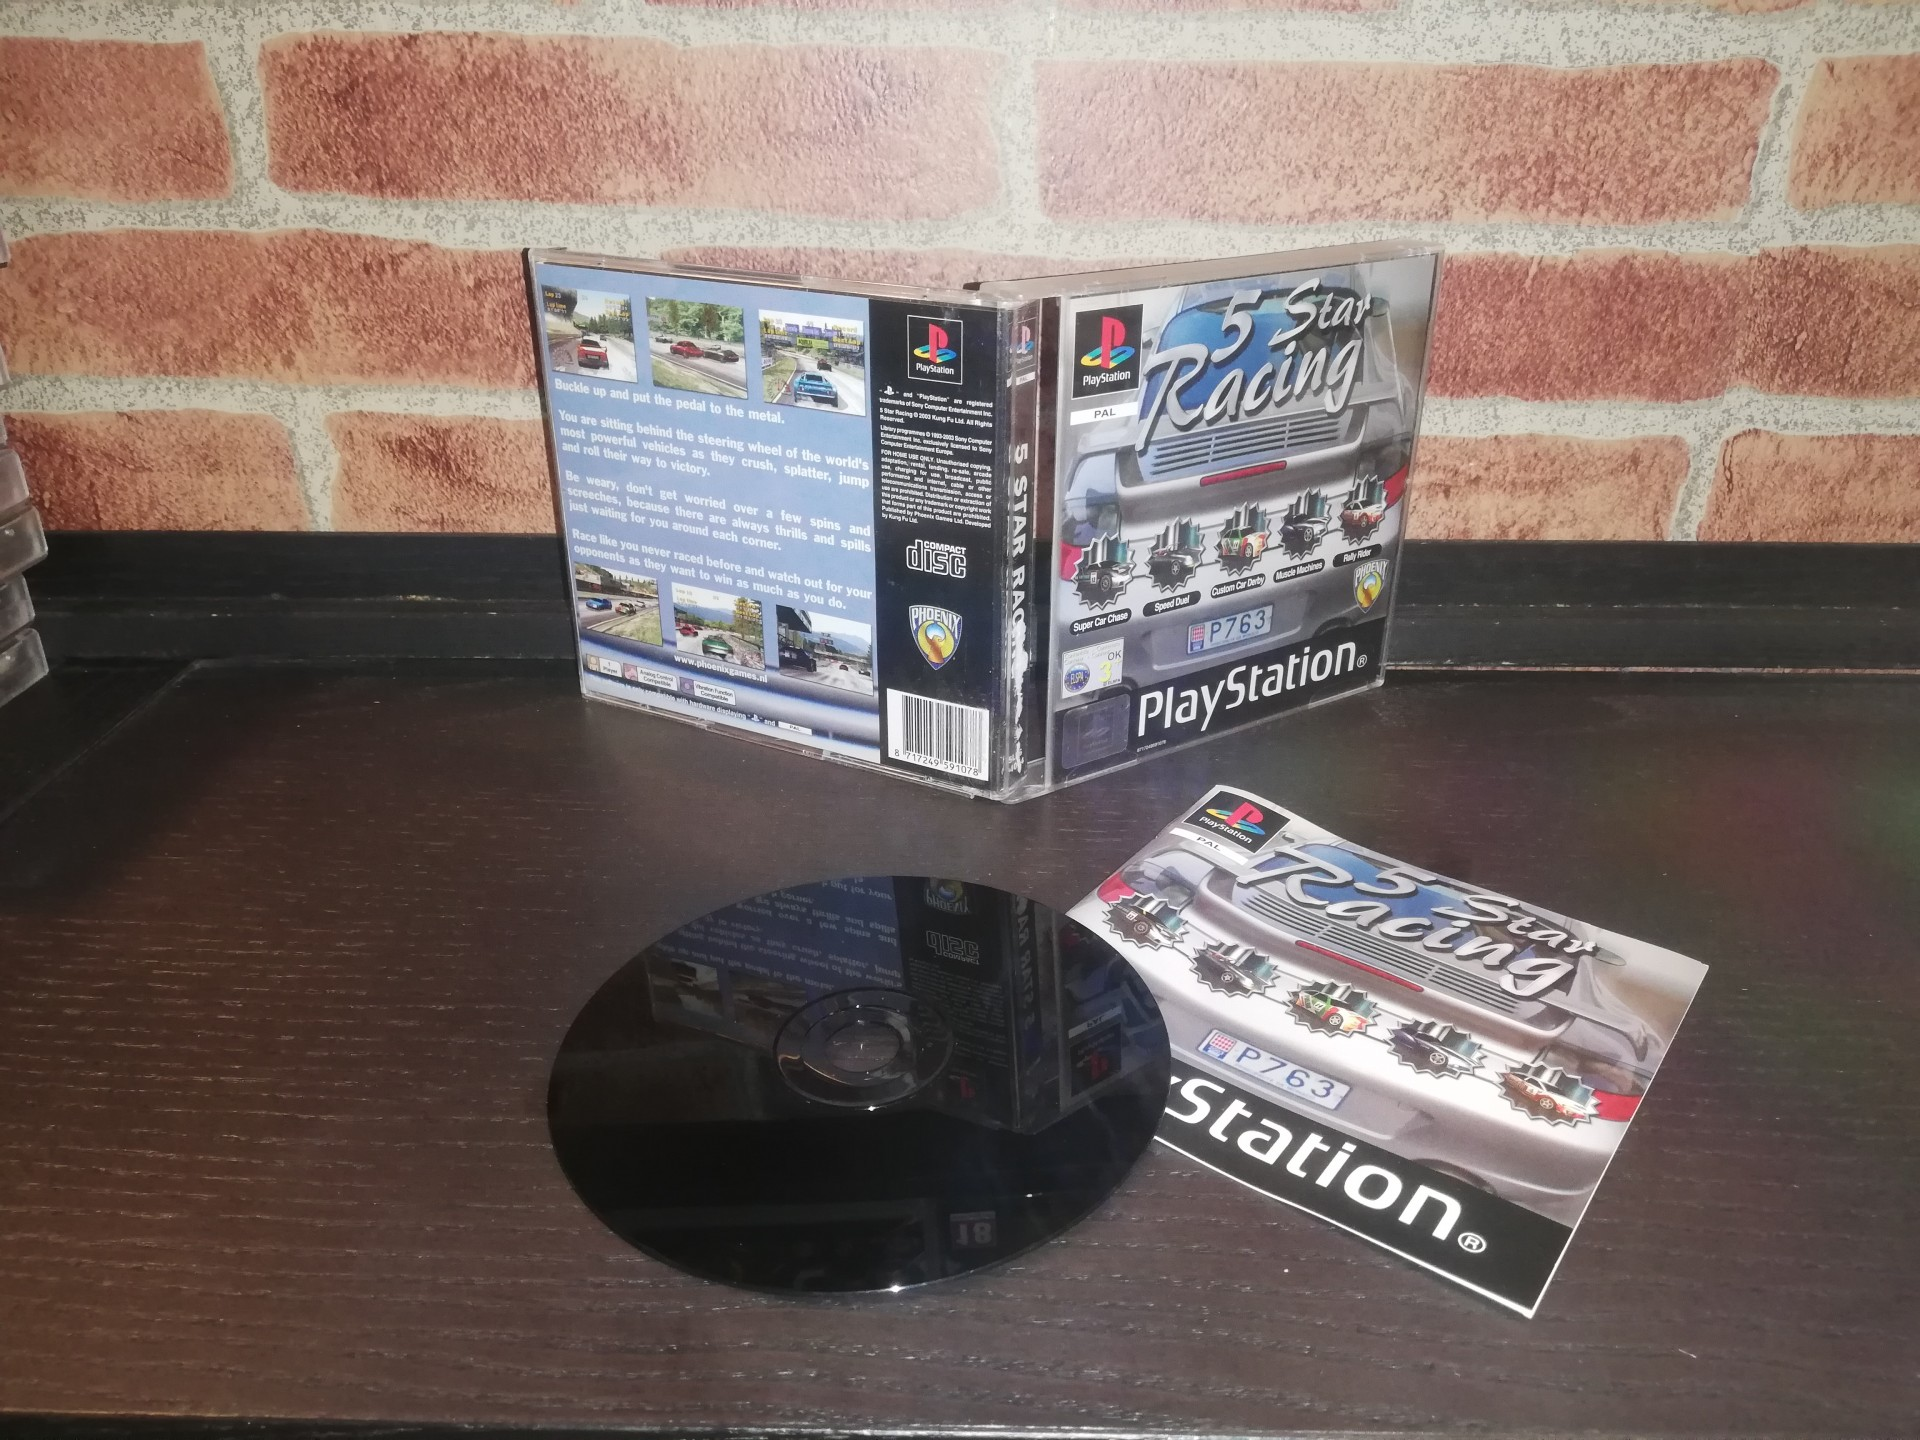 5 Star Racing [Completo] - PS1